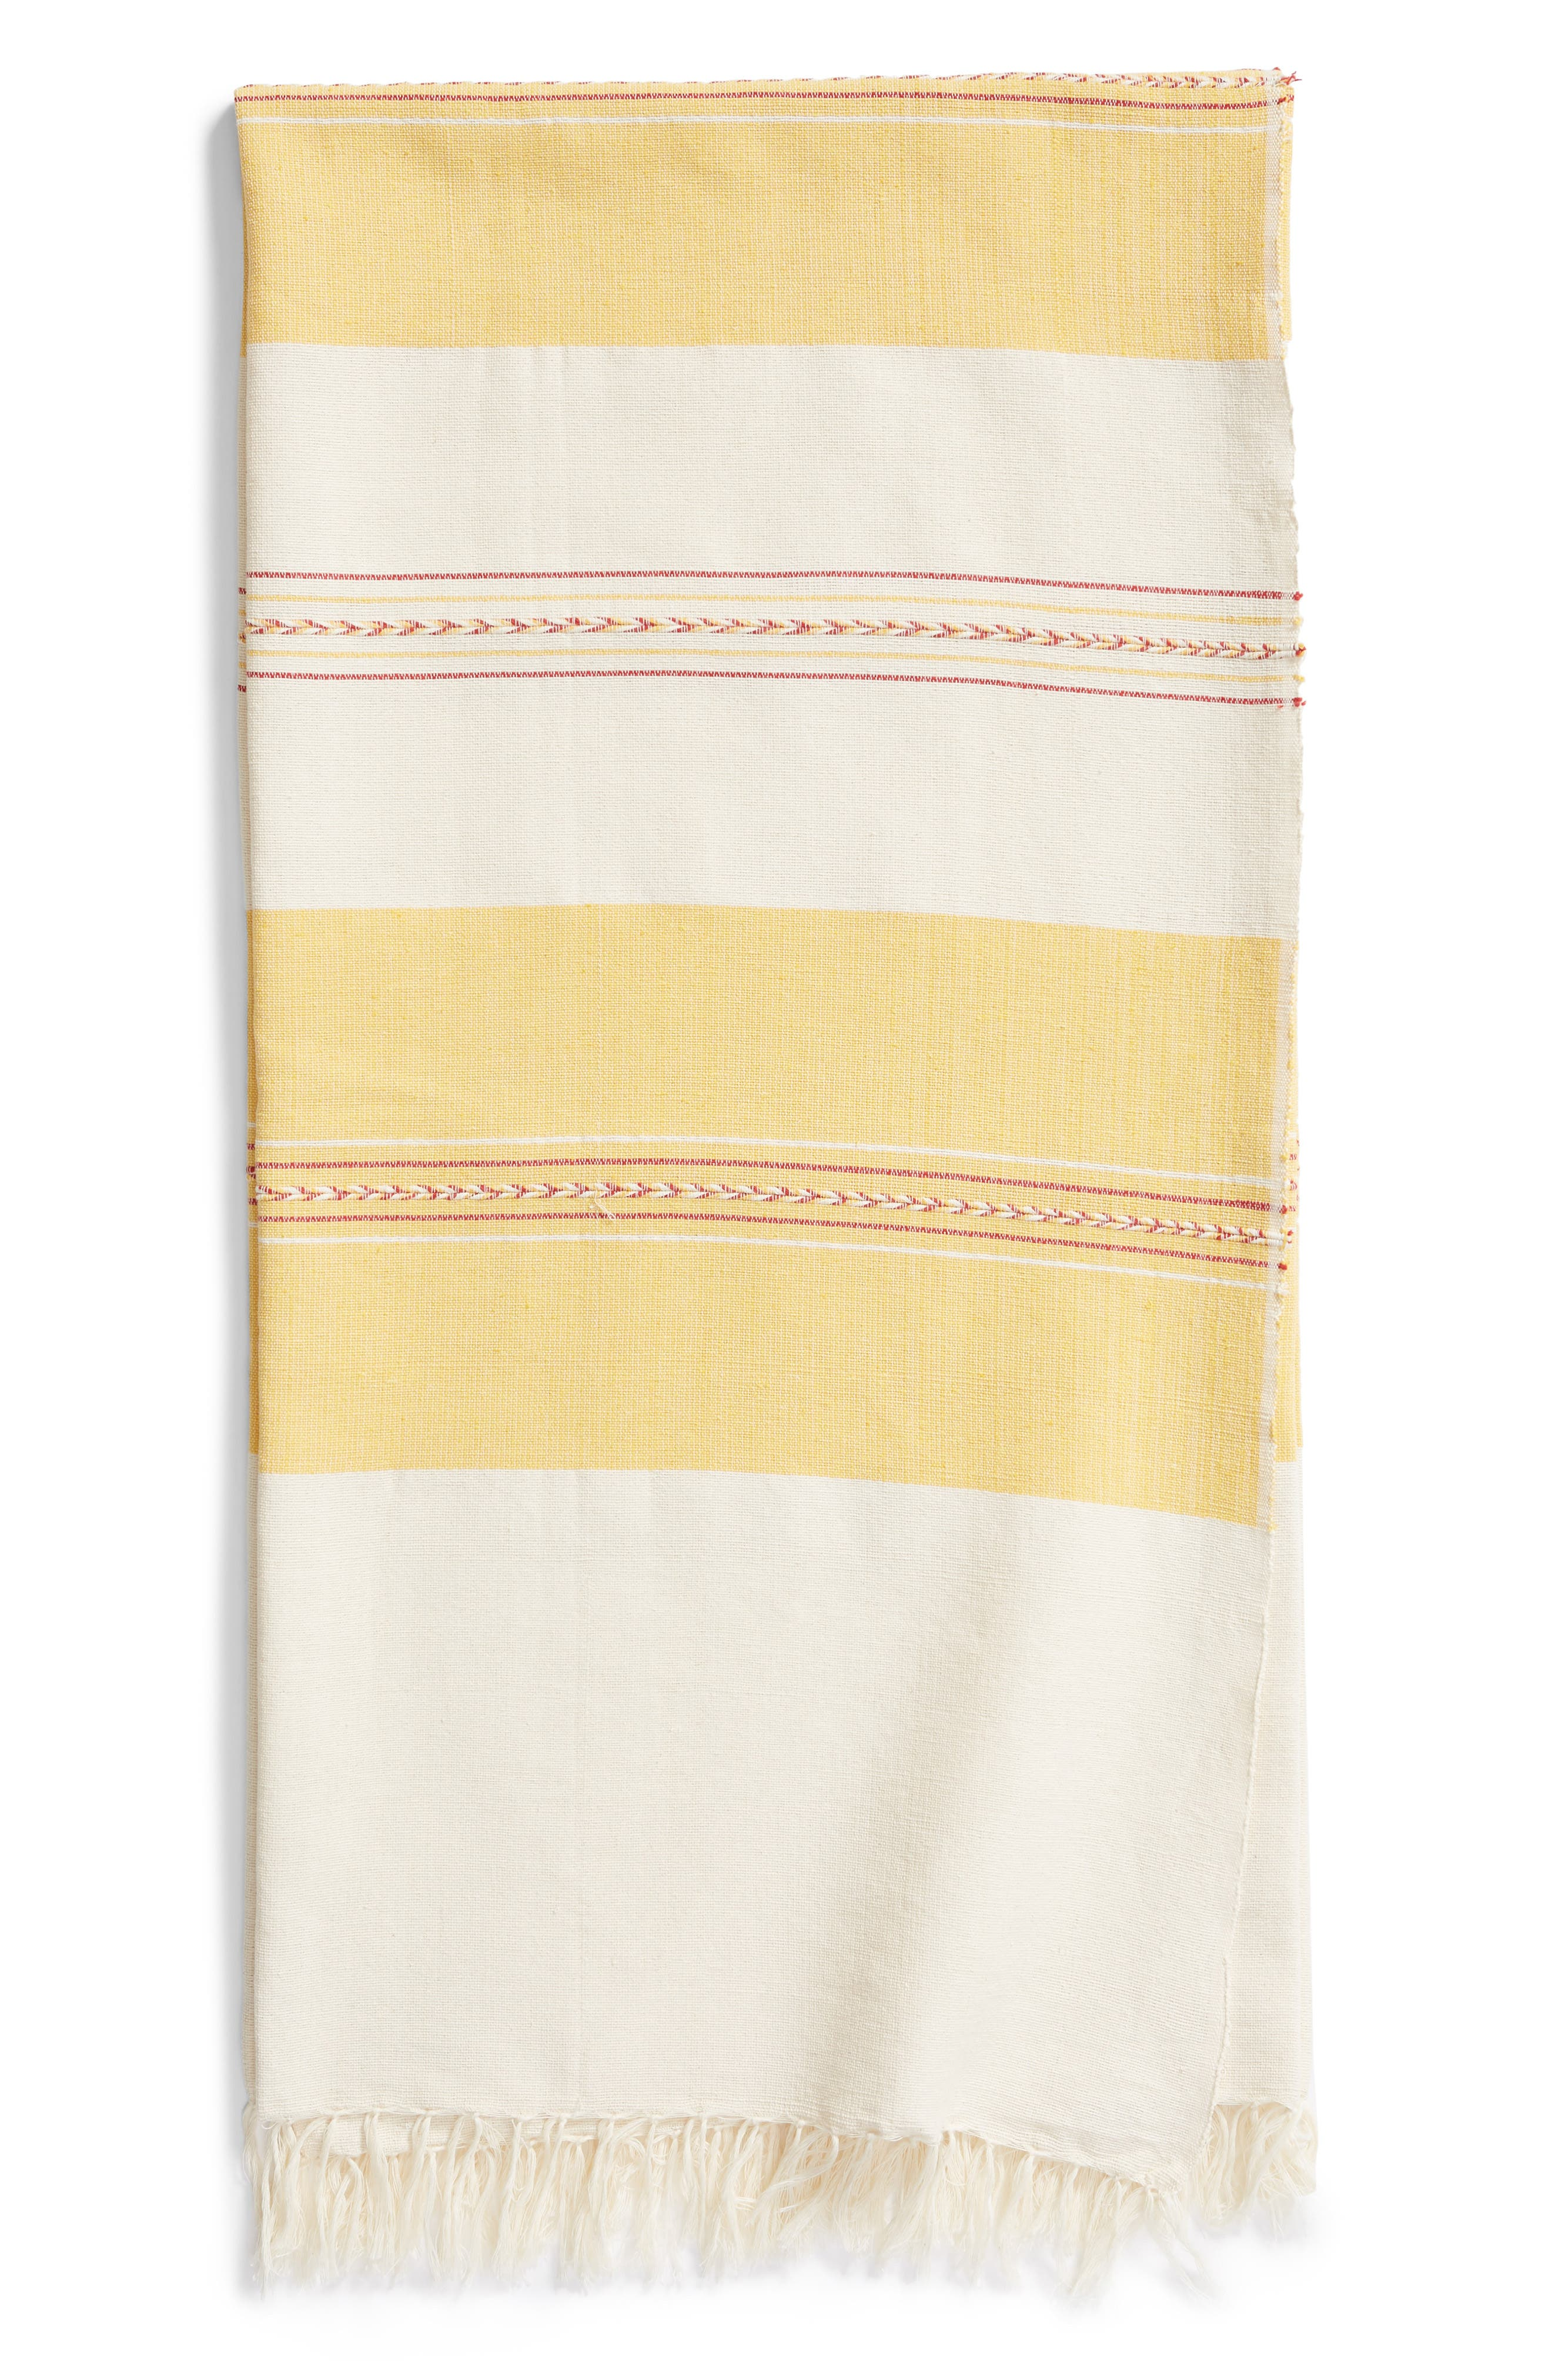 Golden Dunes Woven Cotton Blanket,                         Main,                         color, 250